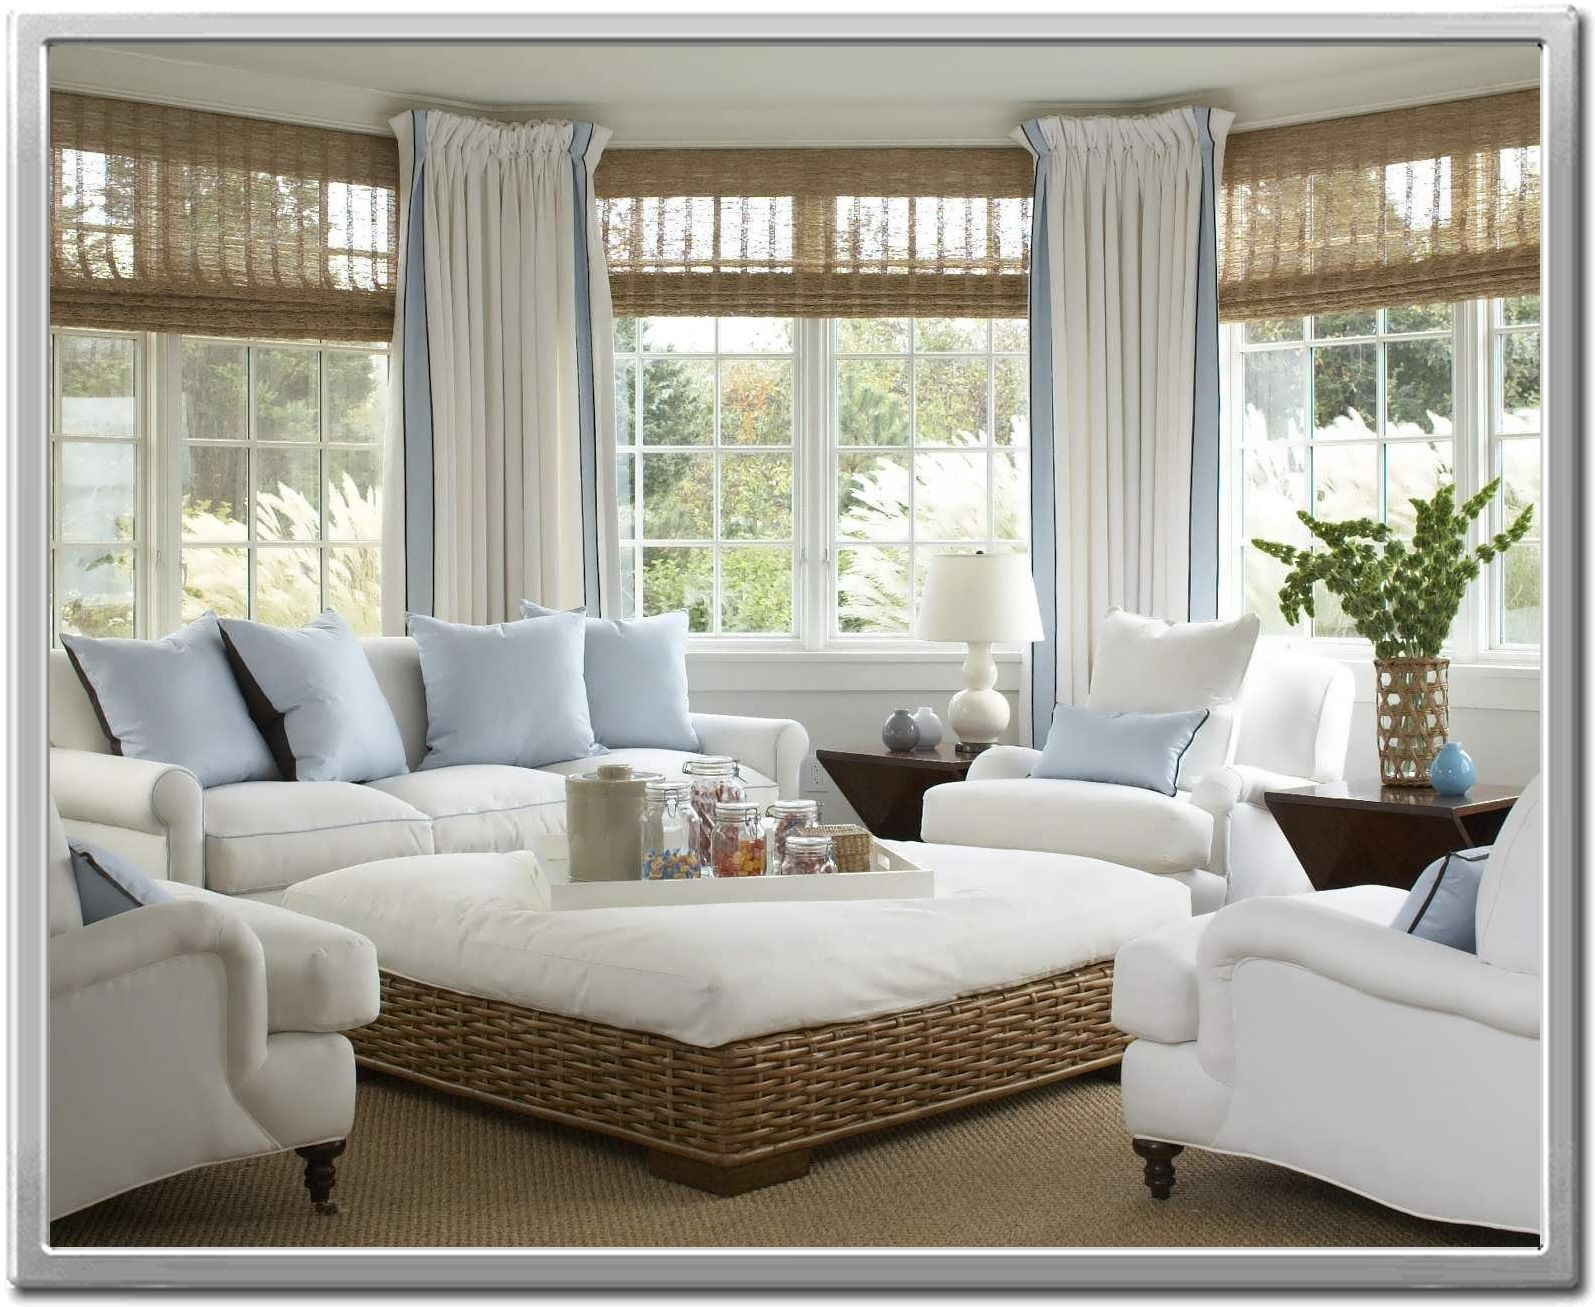 Sunroom Window Treatments Ideas - Curtain Ideas  Beach house